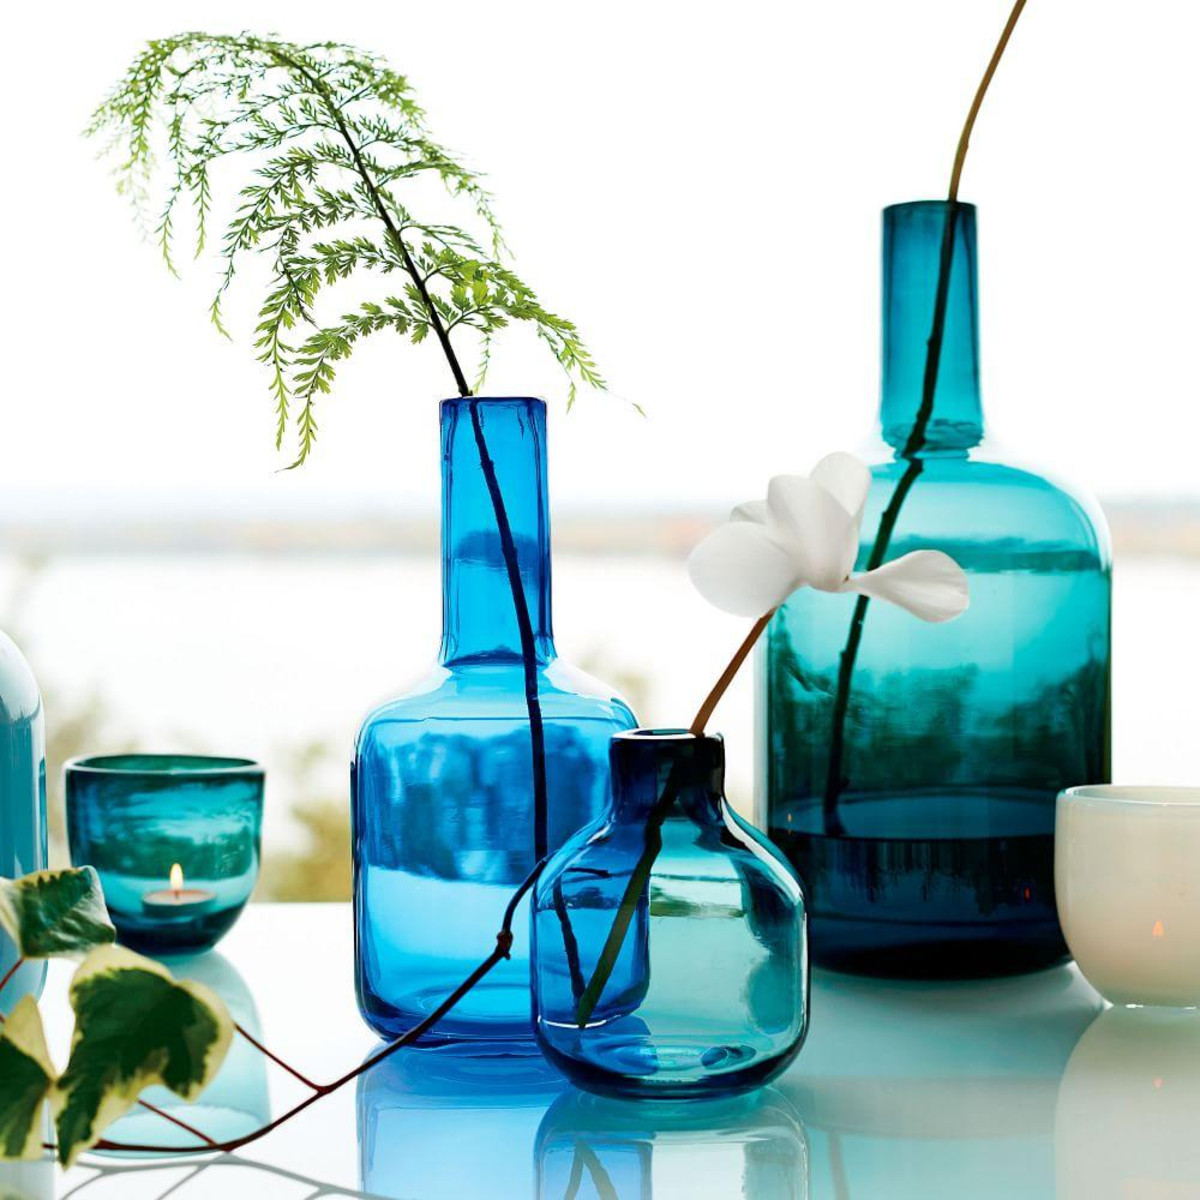 pure-glass-vases.jpg